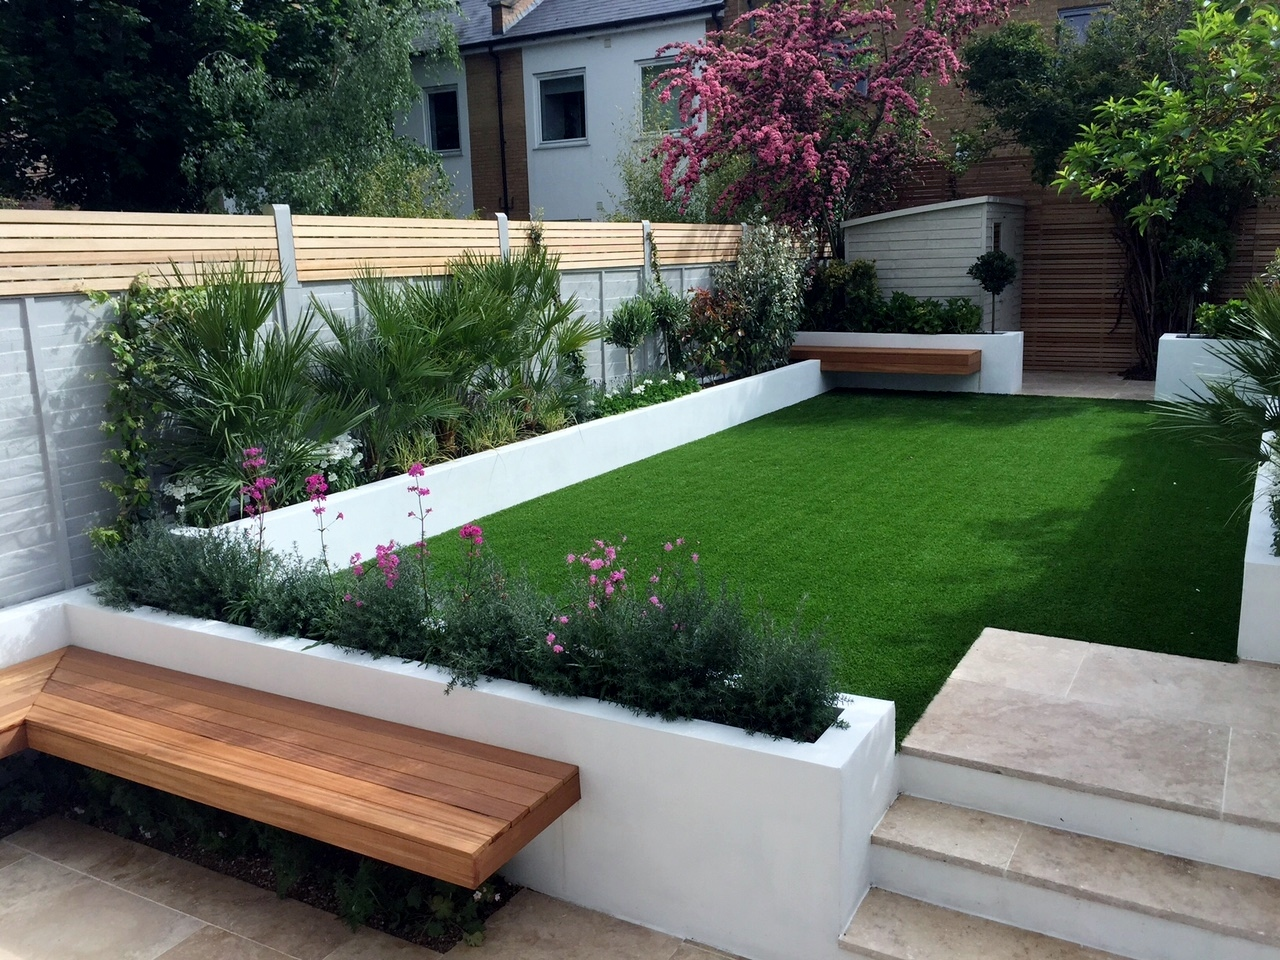 Modern garden design ideas fulham chelsea battersea for Garden design ideas